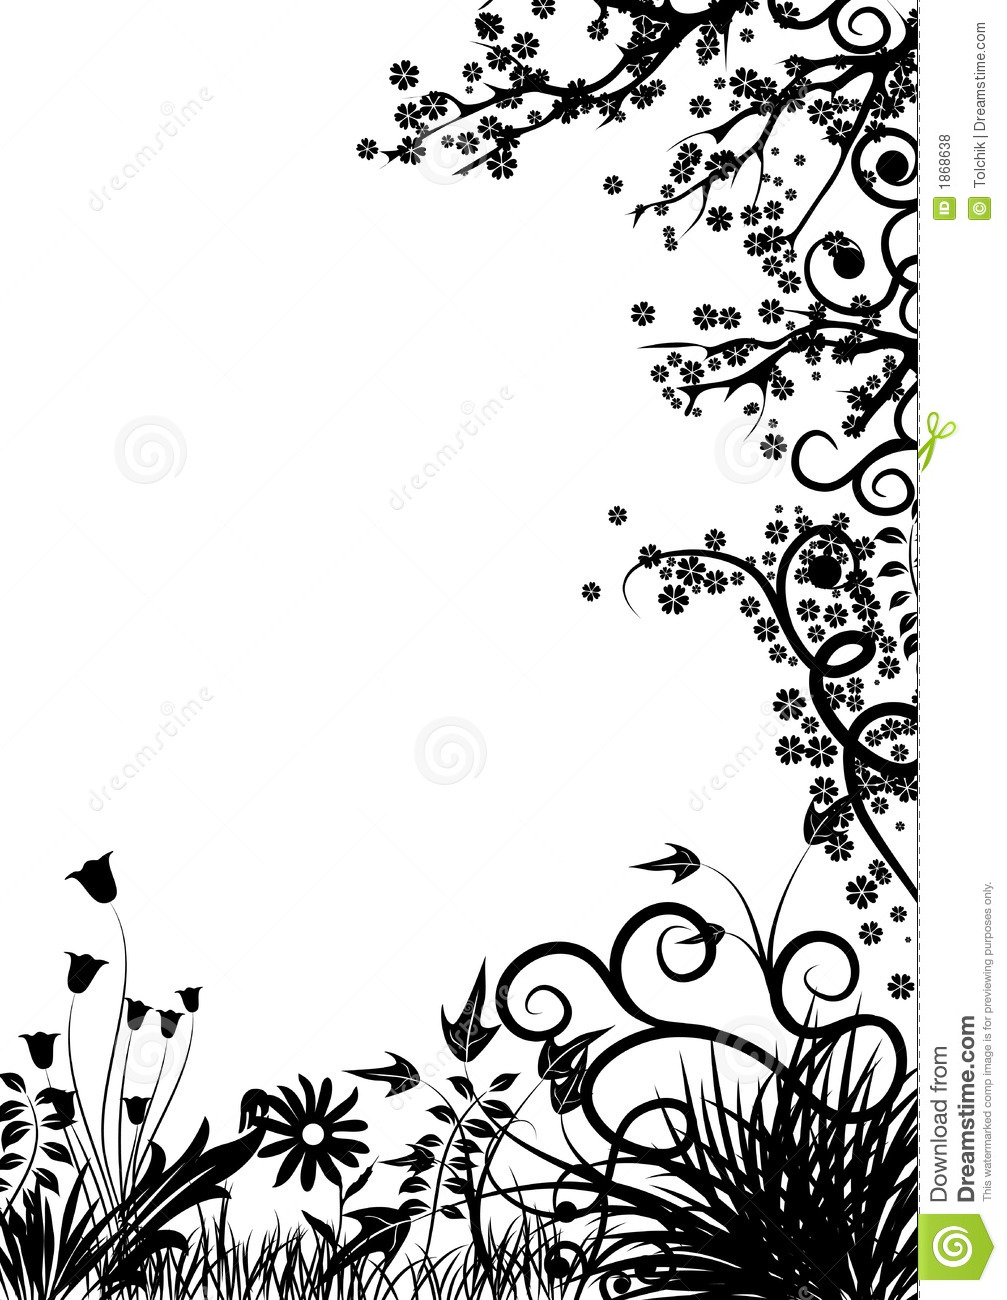 Batik pattern background in vector royalty free stock photos image - Floral Frame Vector Royalty Free Stock Photos Image